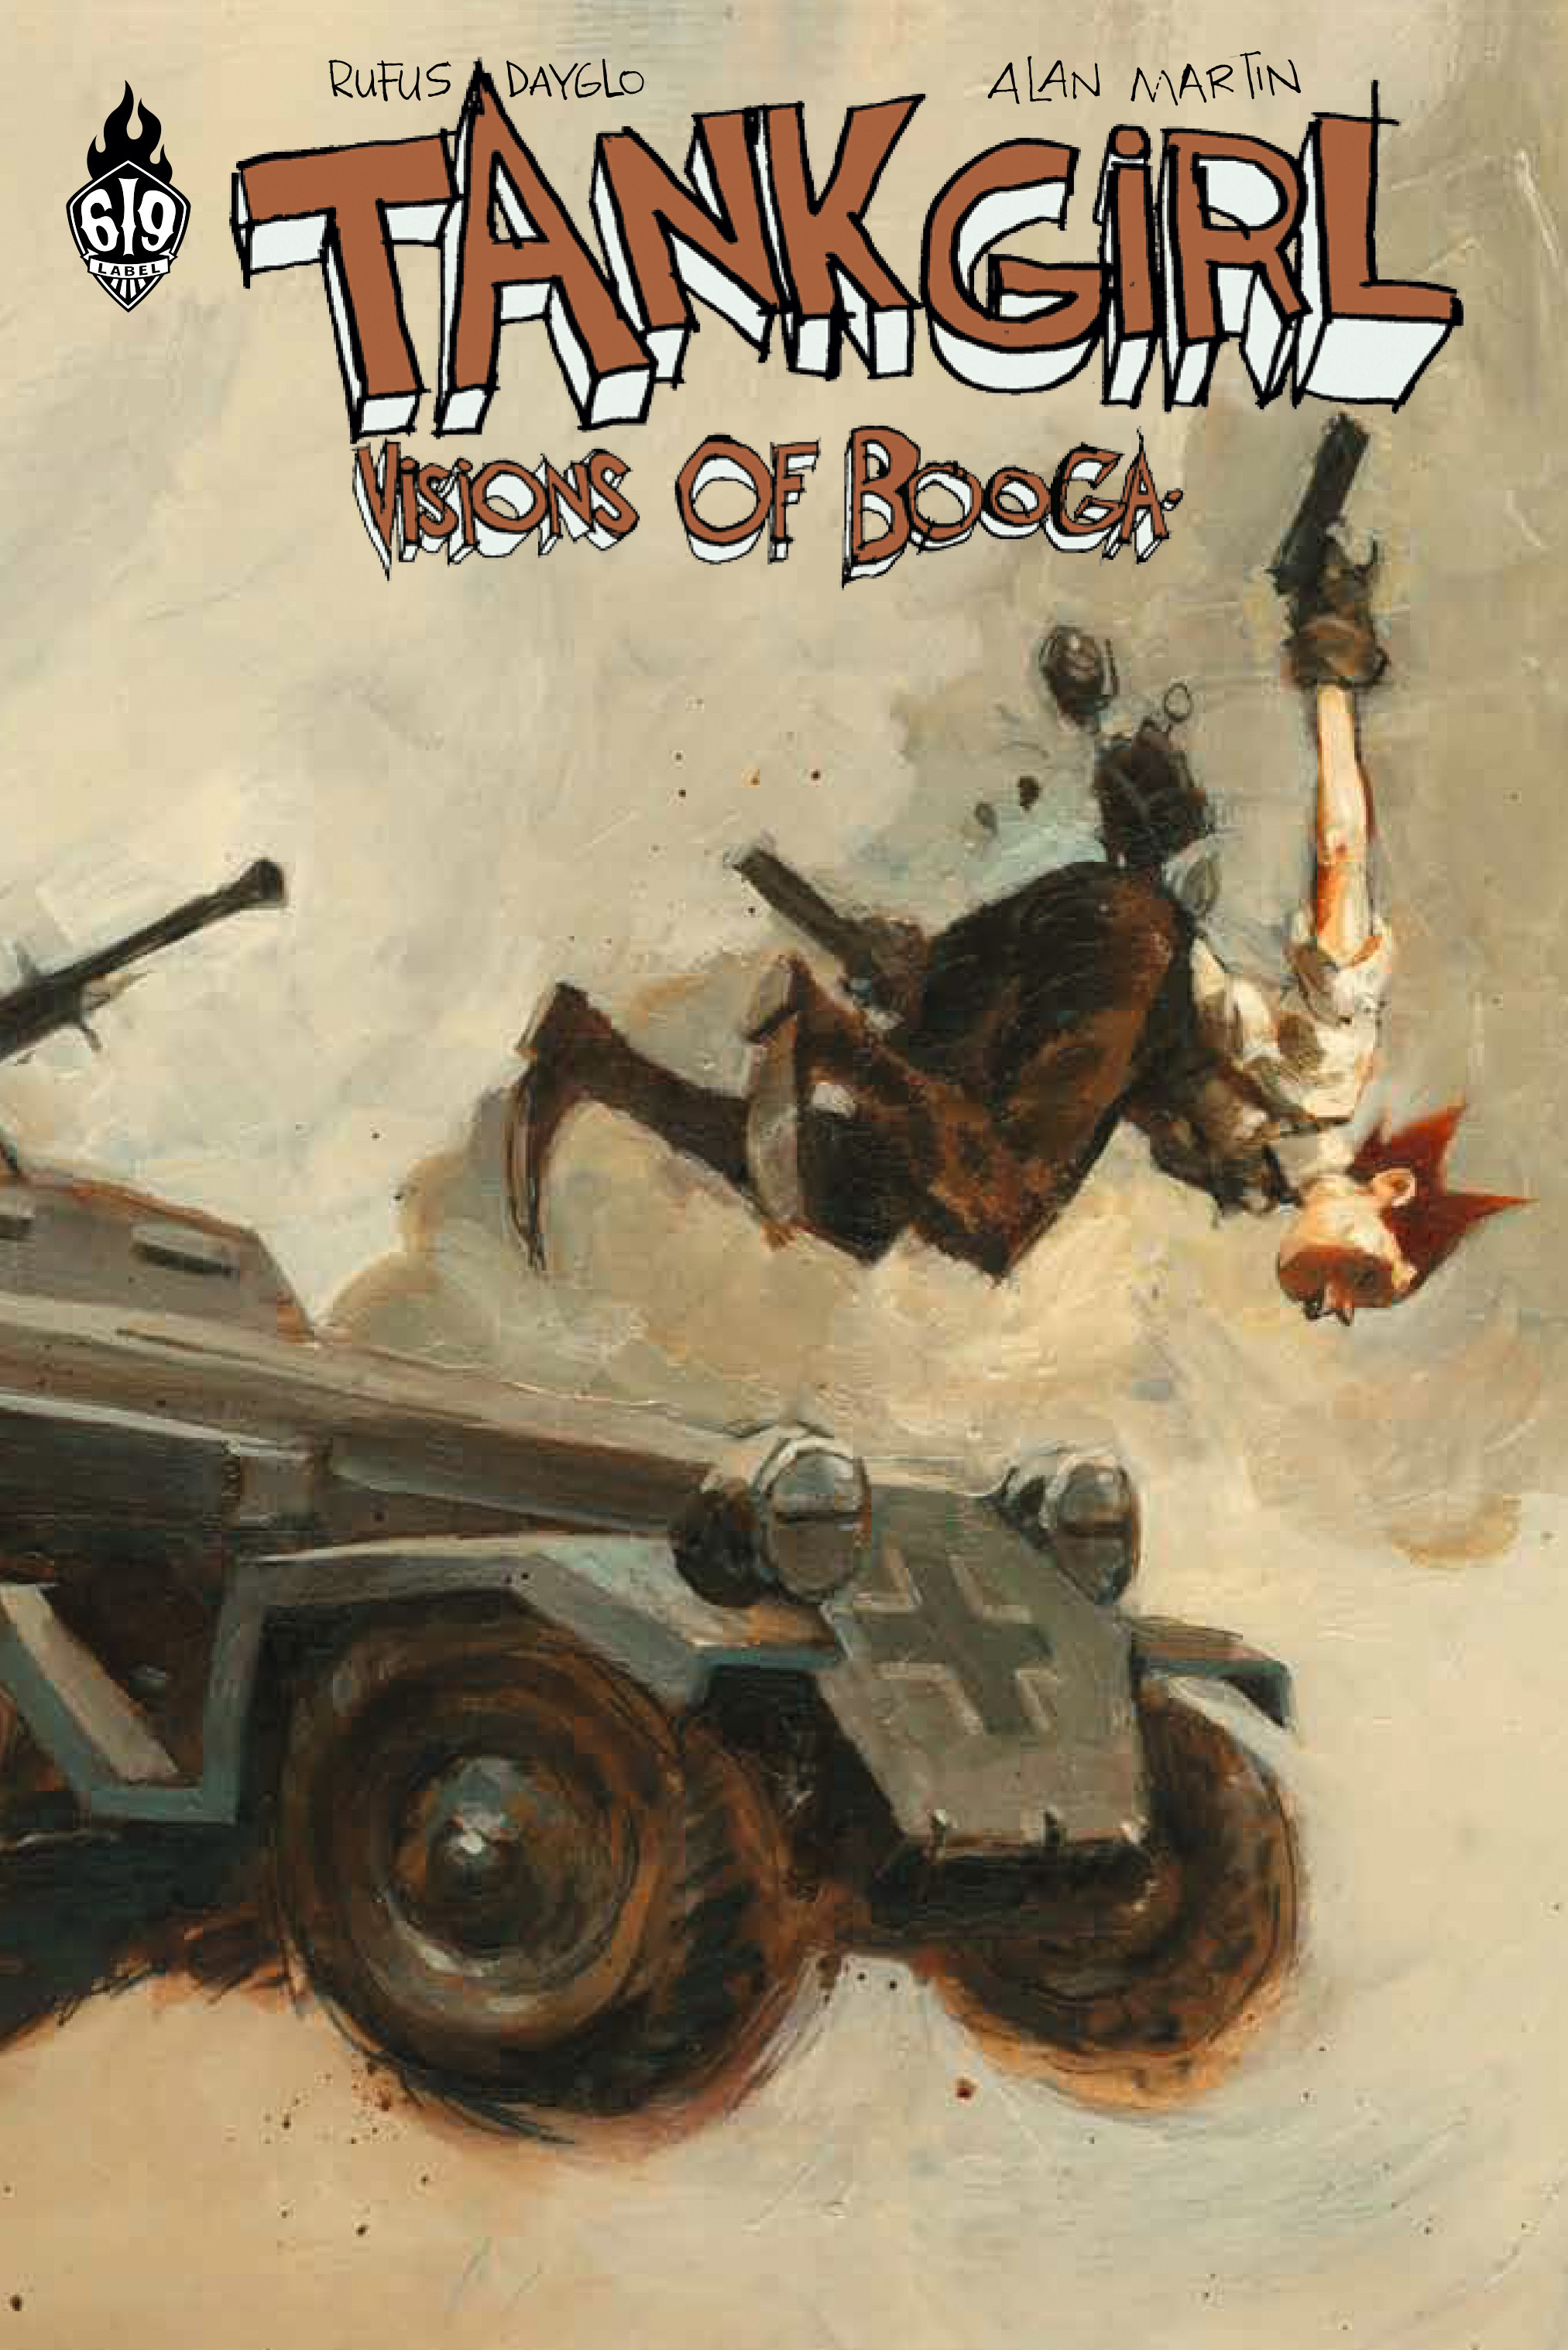 TANK GIRL VISIONS OF BOOGA